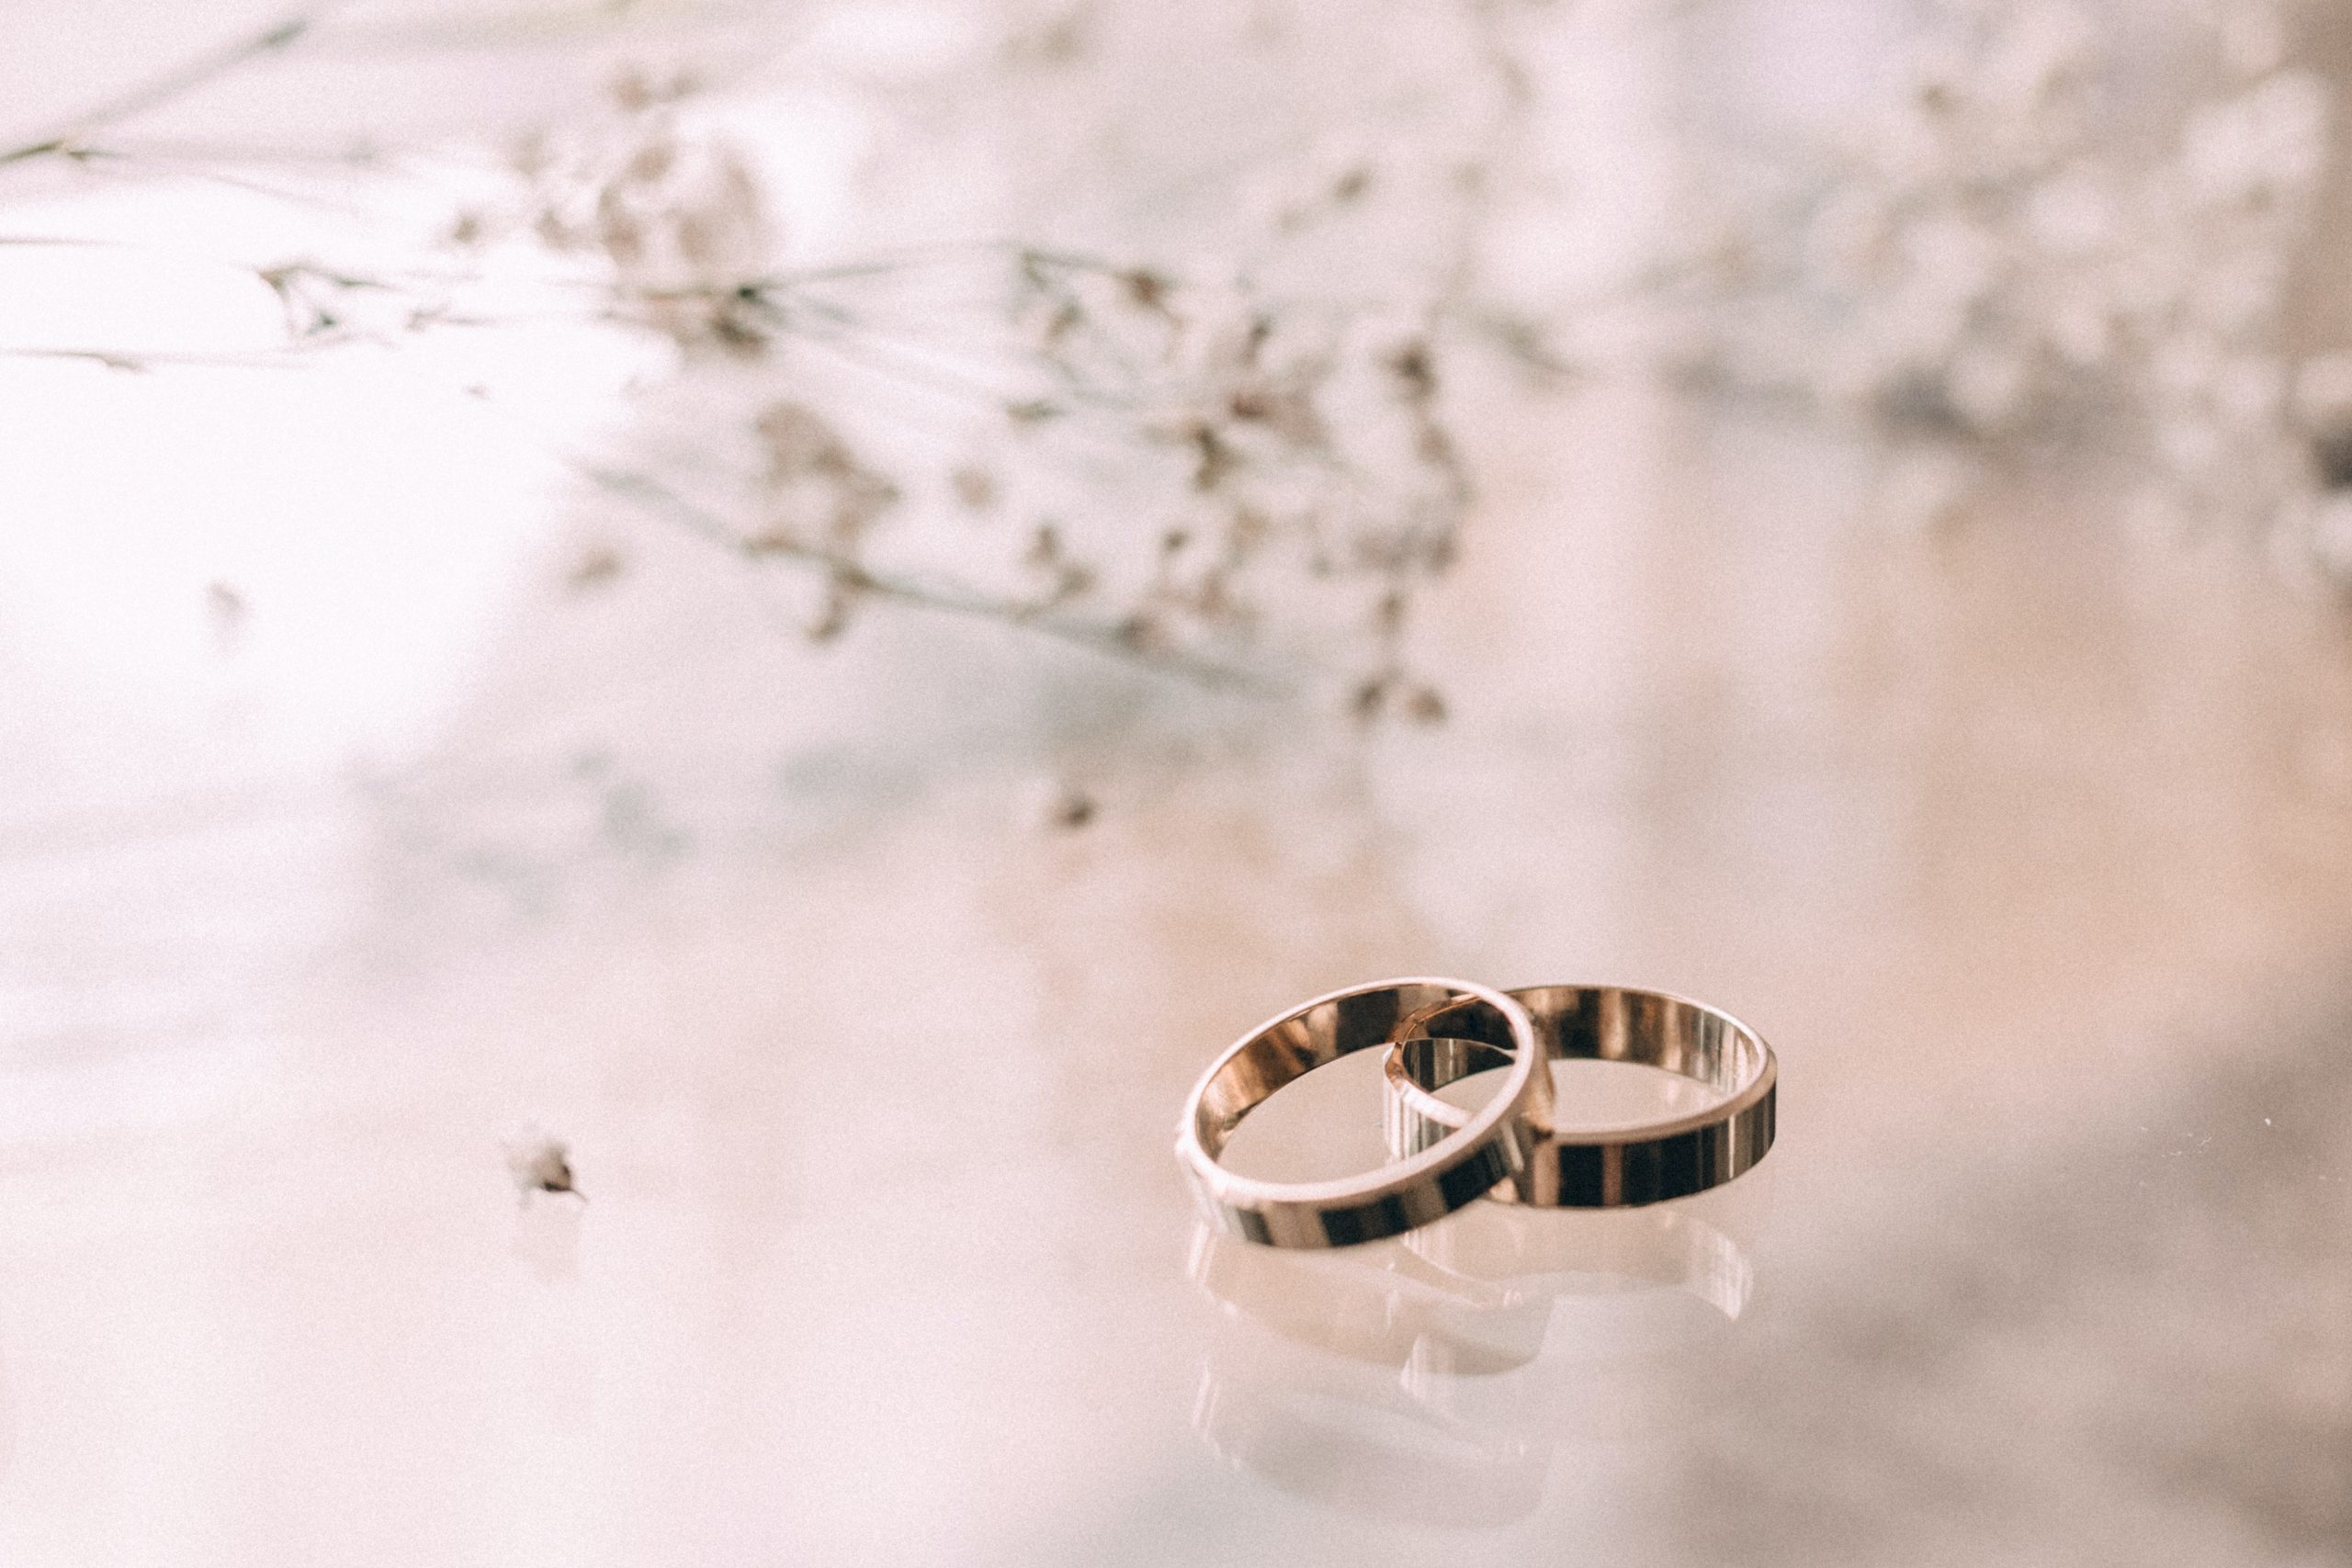 How To Shop For Wedding Rings During The Global Pandemic